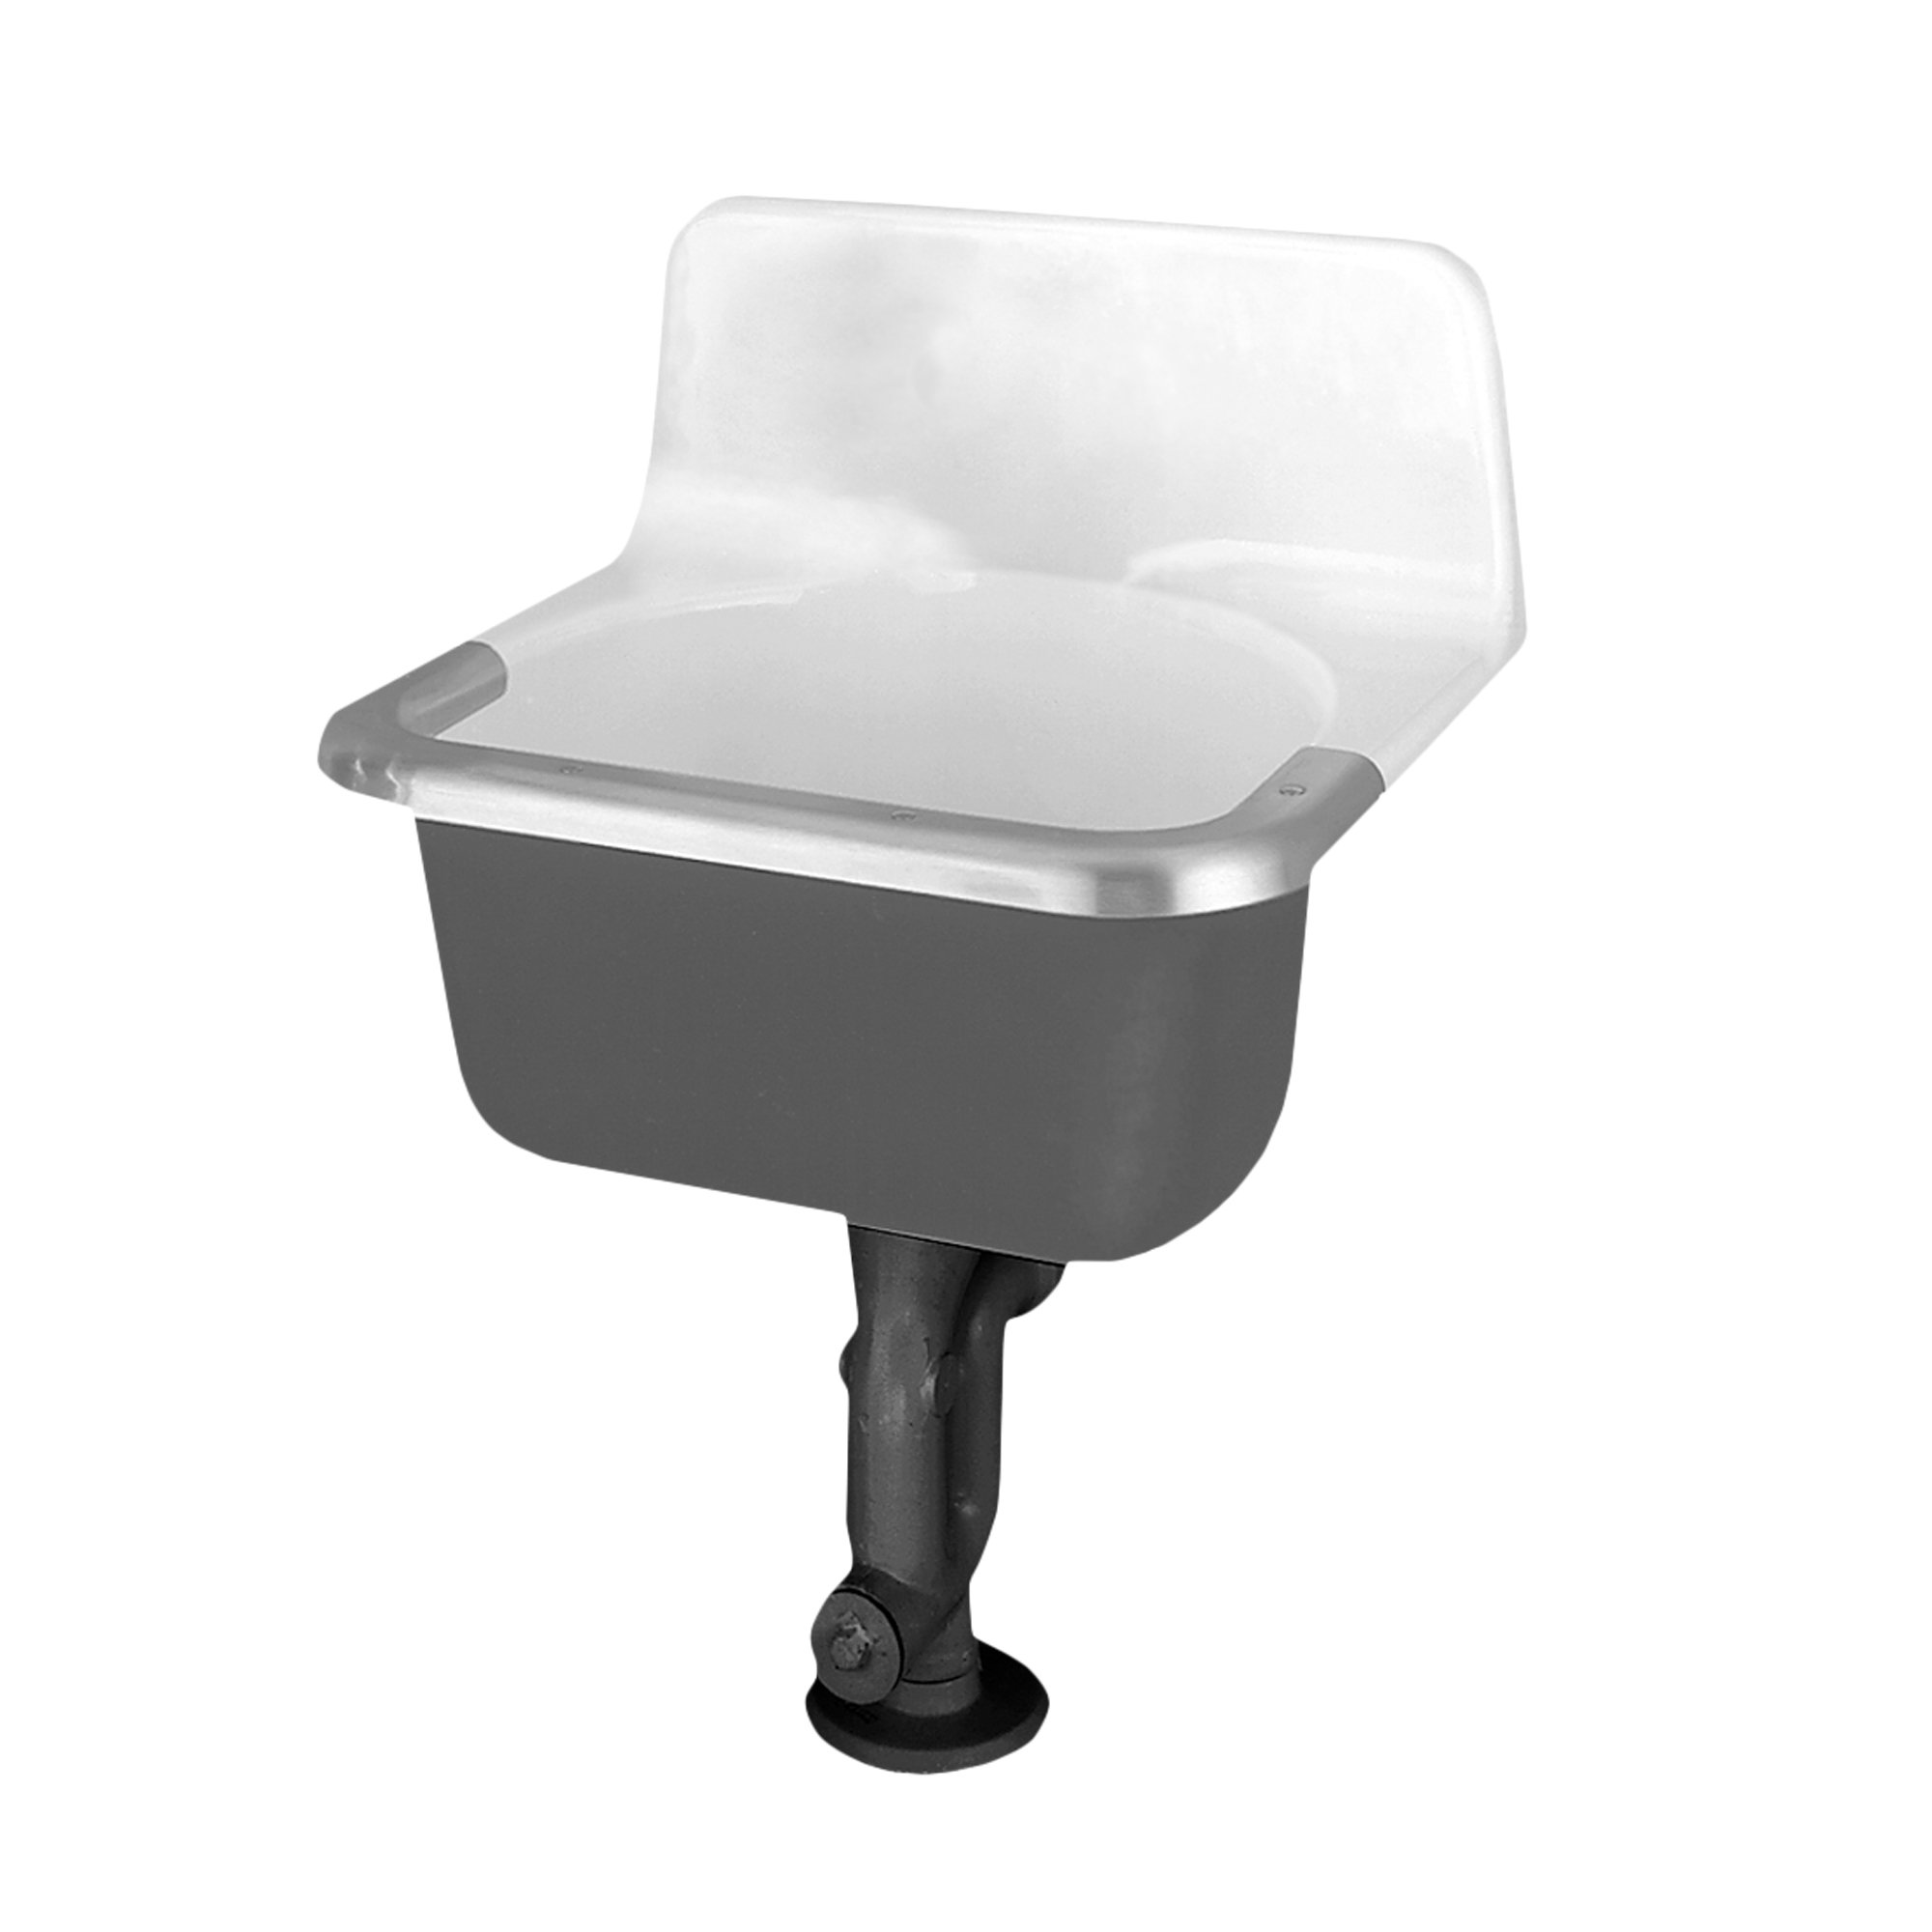 American Standard 7695.008.020 Akron Service Sink with Drilled Back on 8-Inch Center Holes and Rim Guard, Glossy Porcelain by American Standard